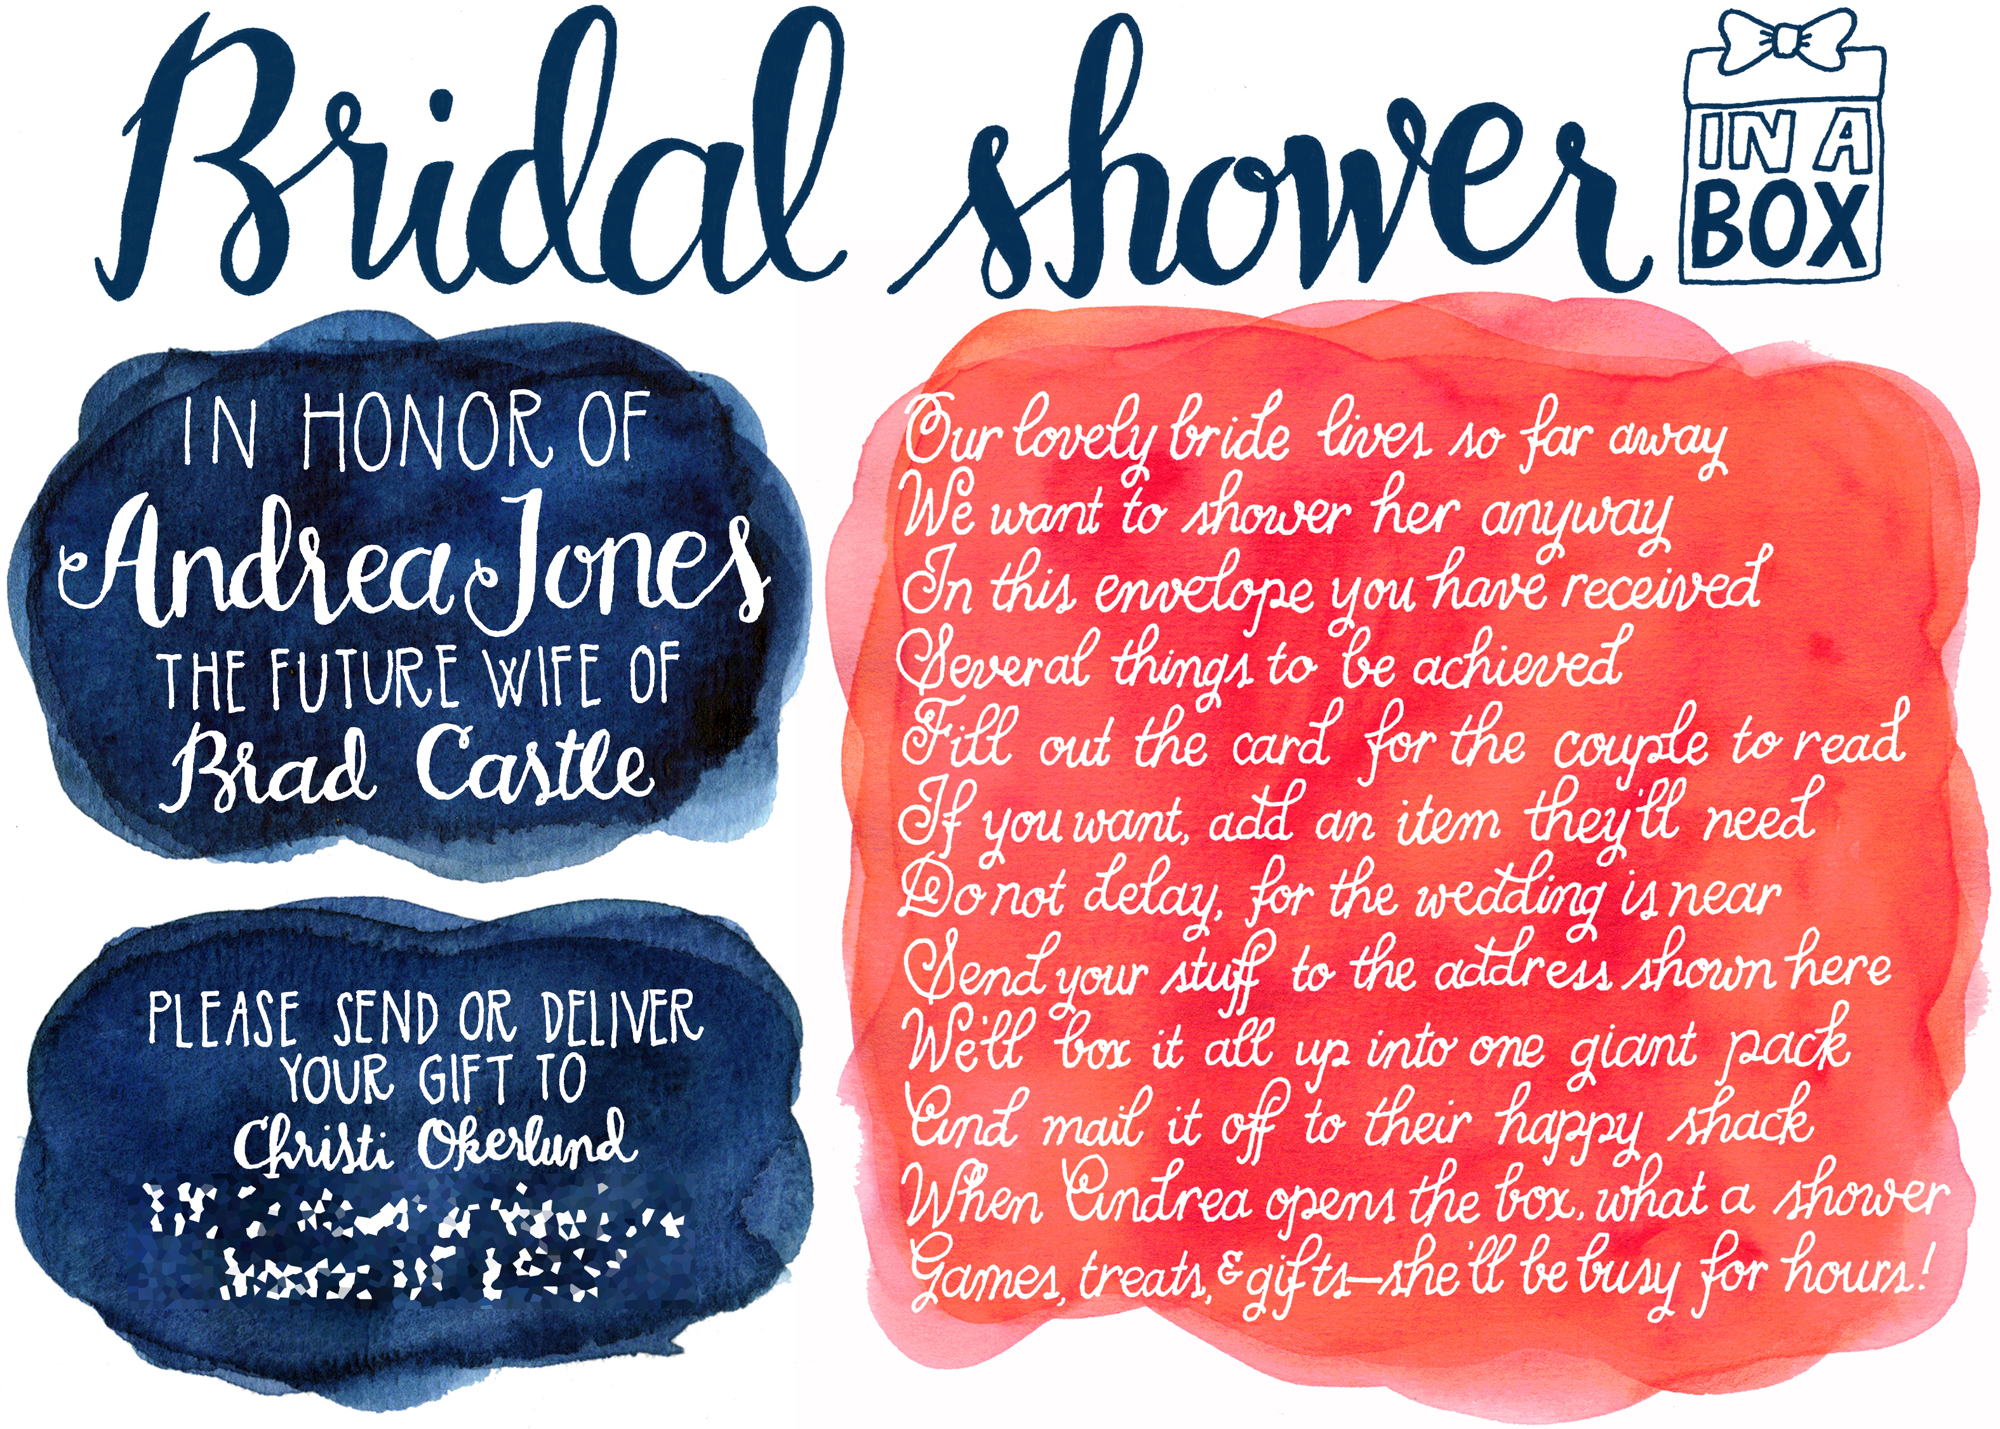 Bridal Shower Gift For My Best Friend : Baby shower invitation for my friend Jesi. This was a redo, as I was ...